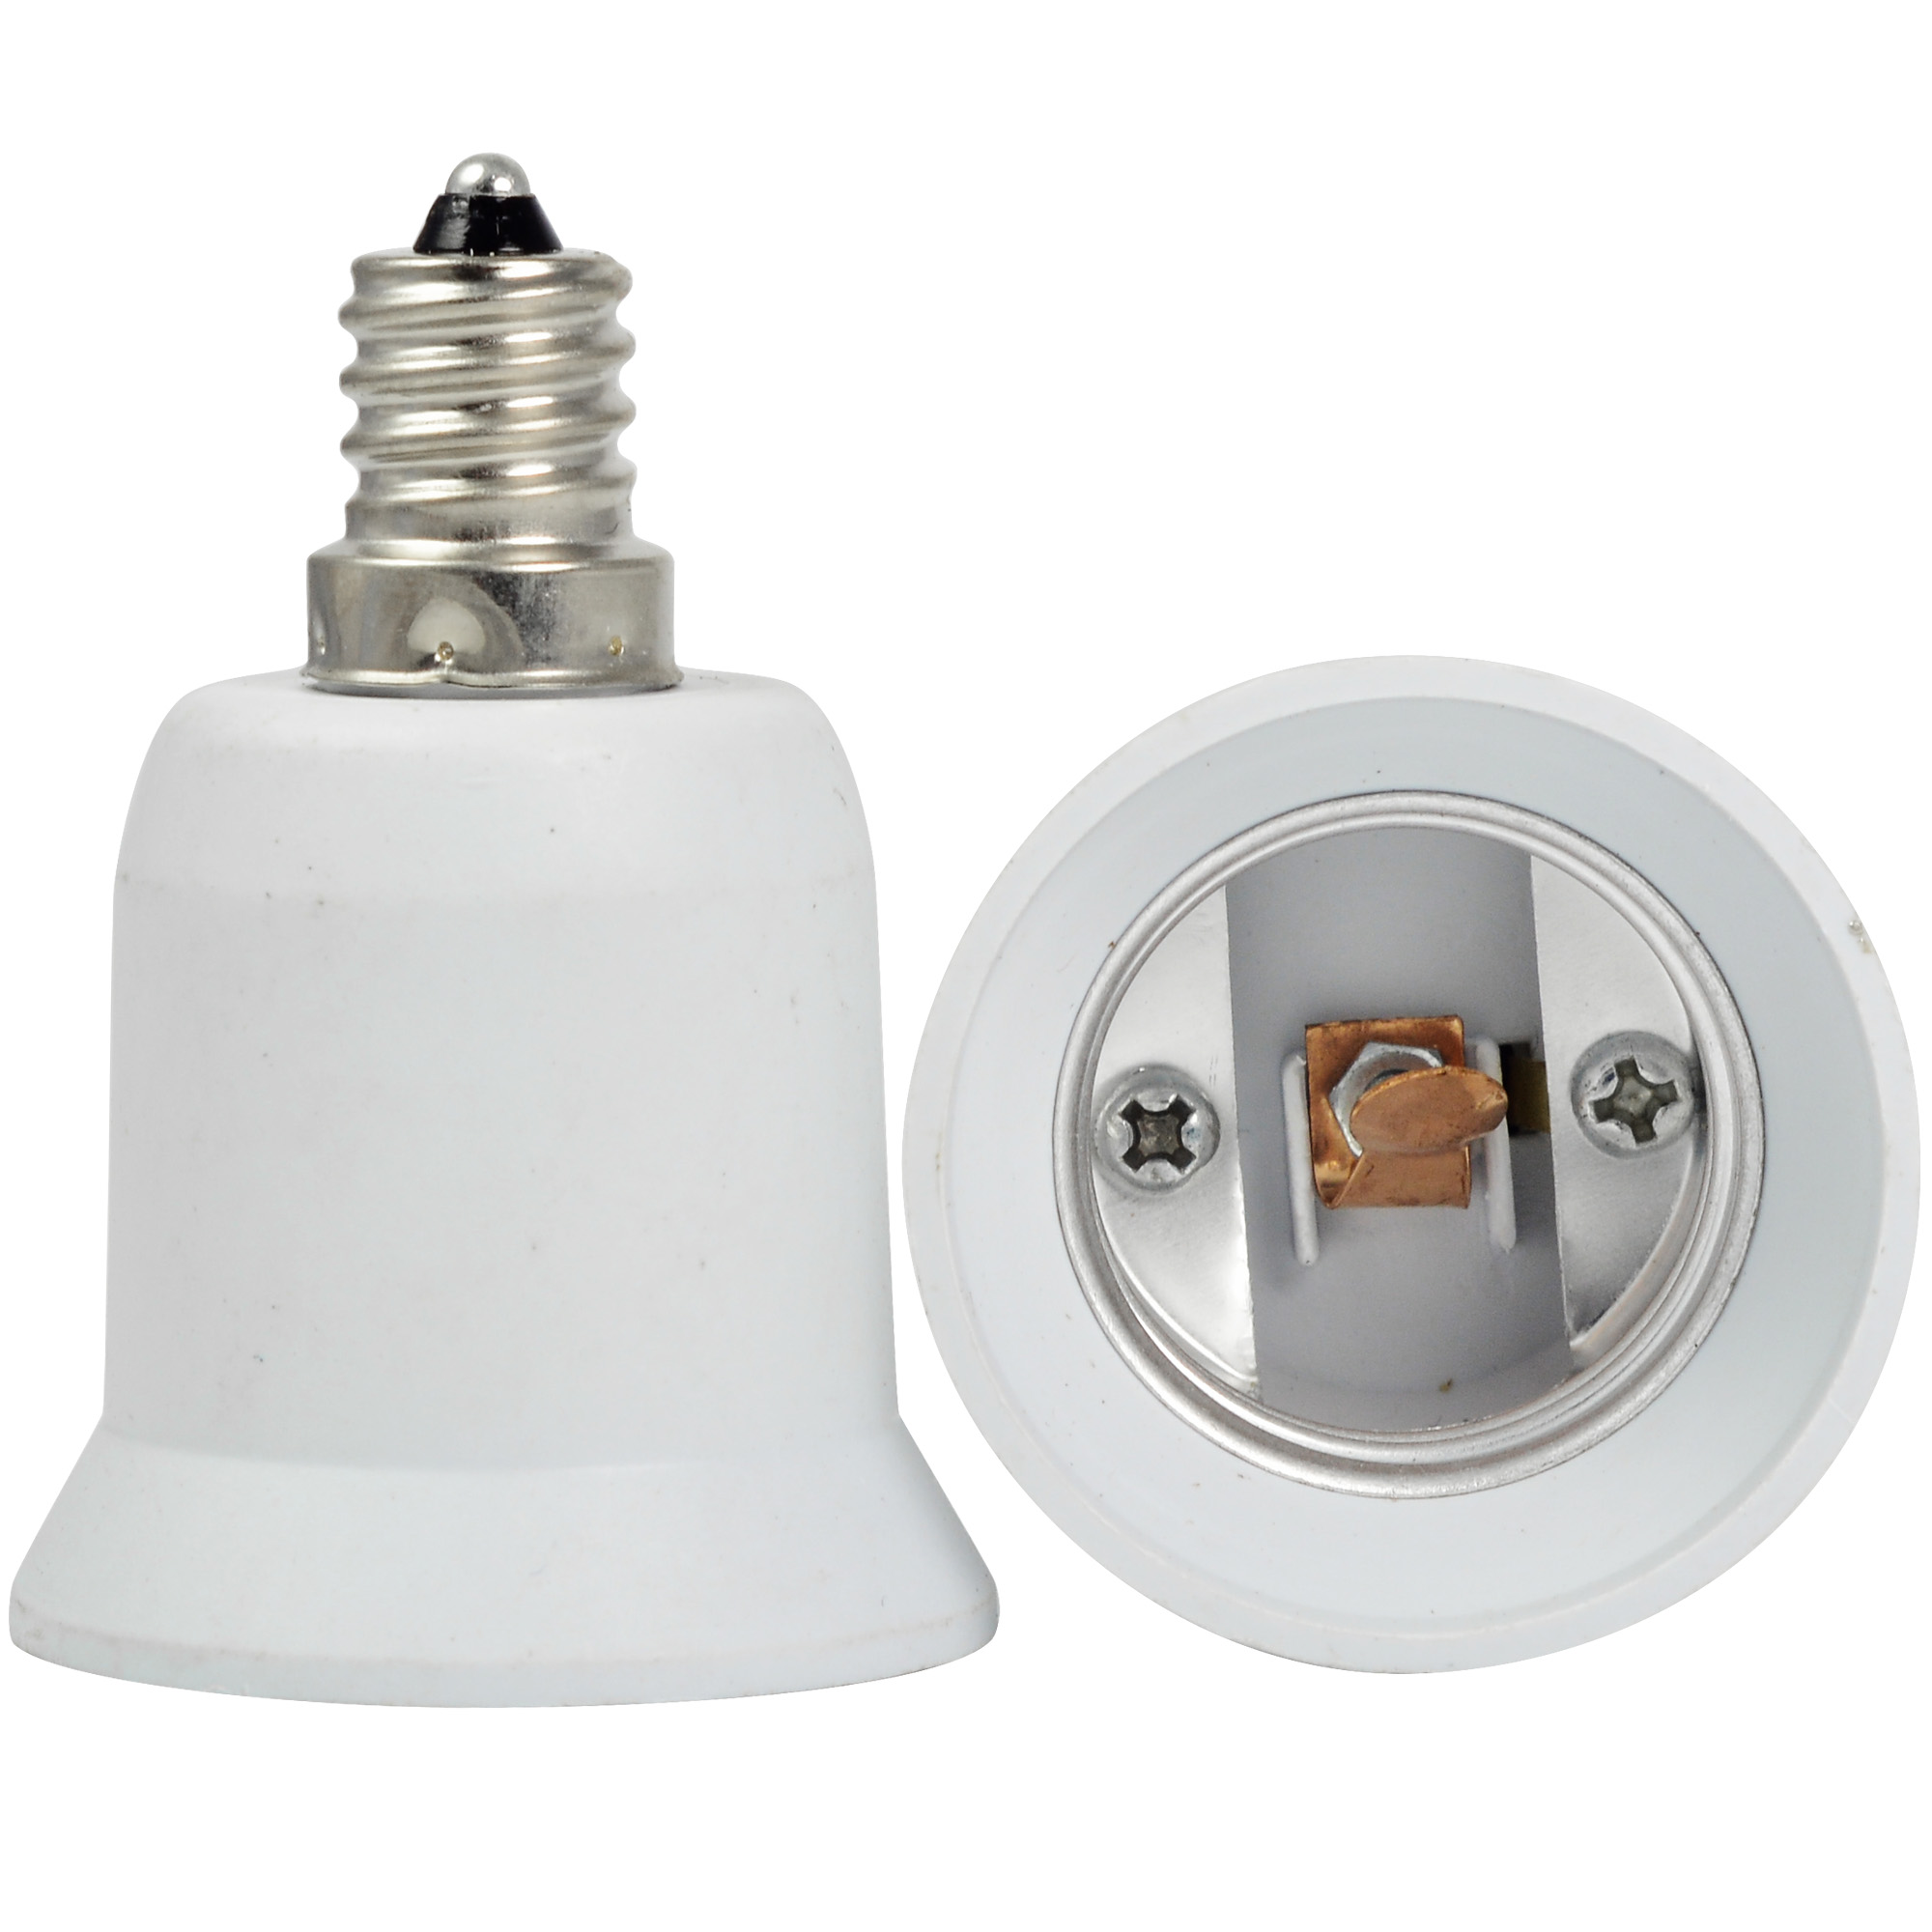 Mengsled mengs high quality lamp base adapter e12 to e27 led light bulb socket converter Light bulb socket